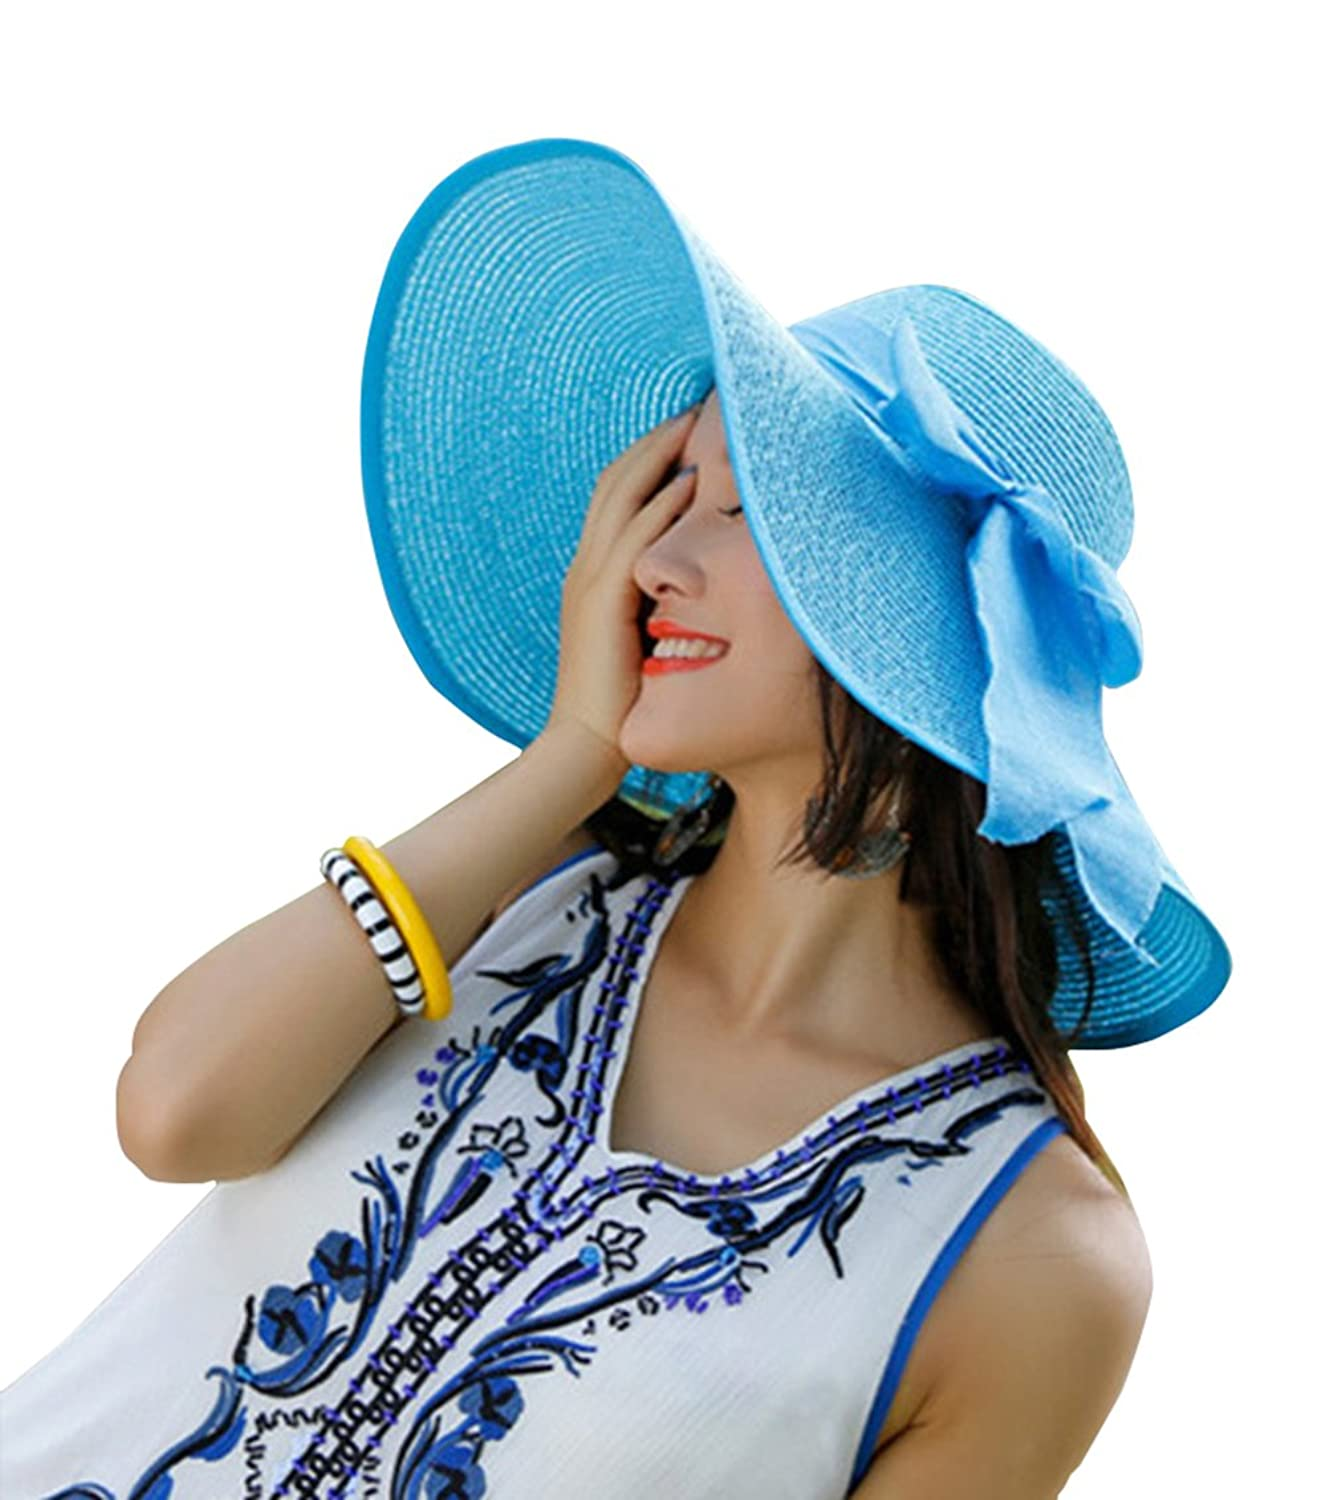 Kaisifei Bowknot Casual Straw Women Summer Hats Big Wide Brim Beach Hat  (Azure) at Amazon Women s Clothing store  5cd2f6cdf750